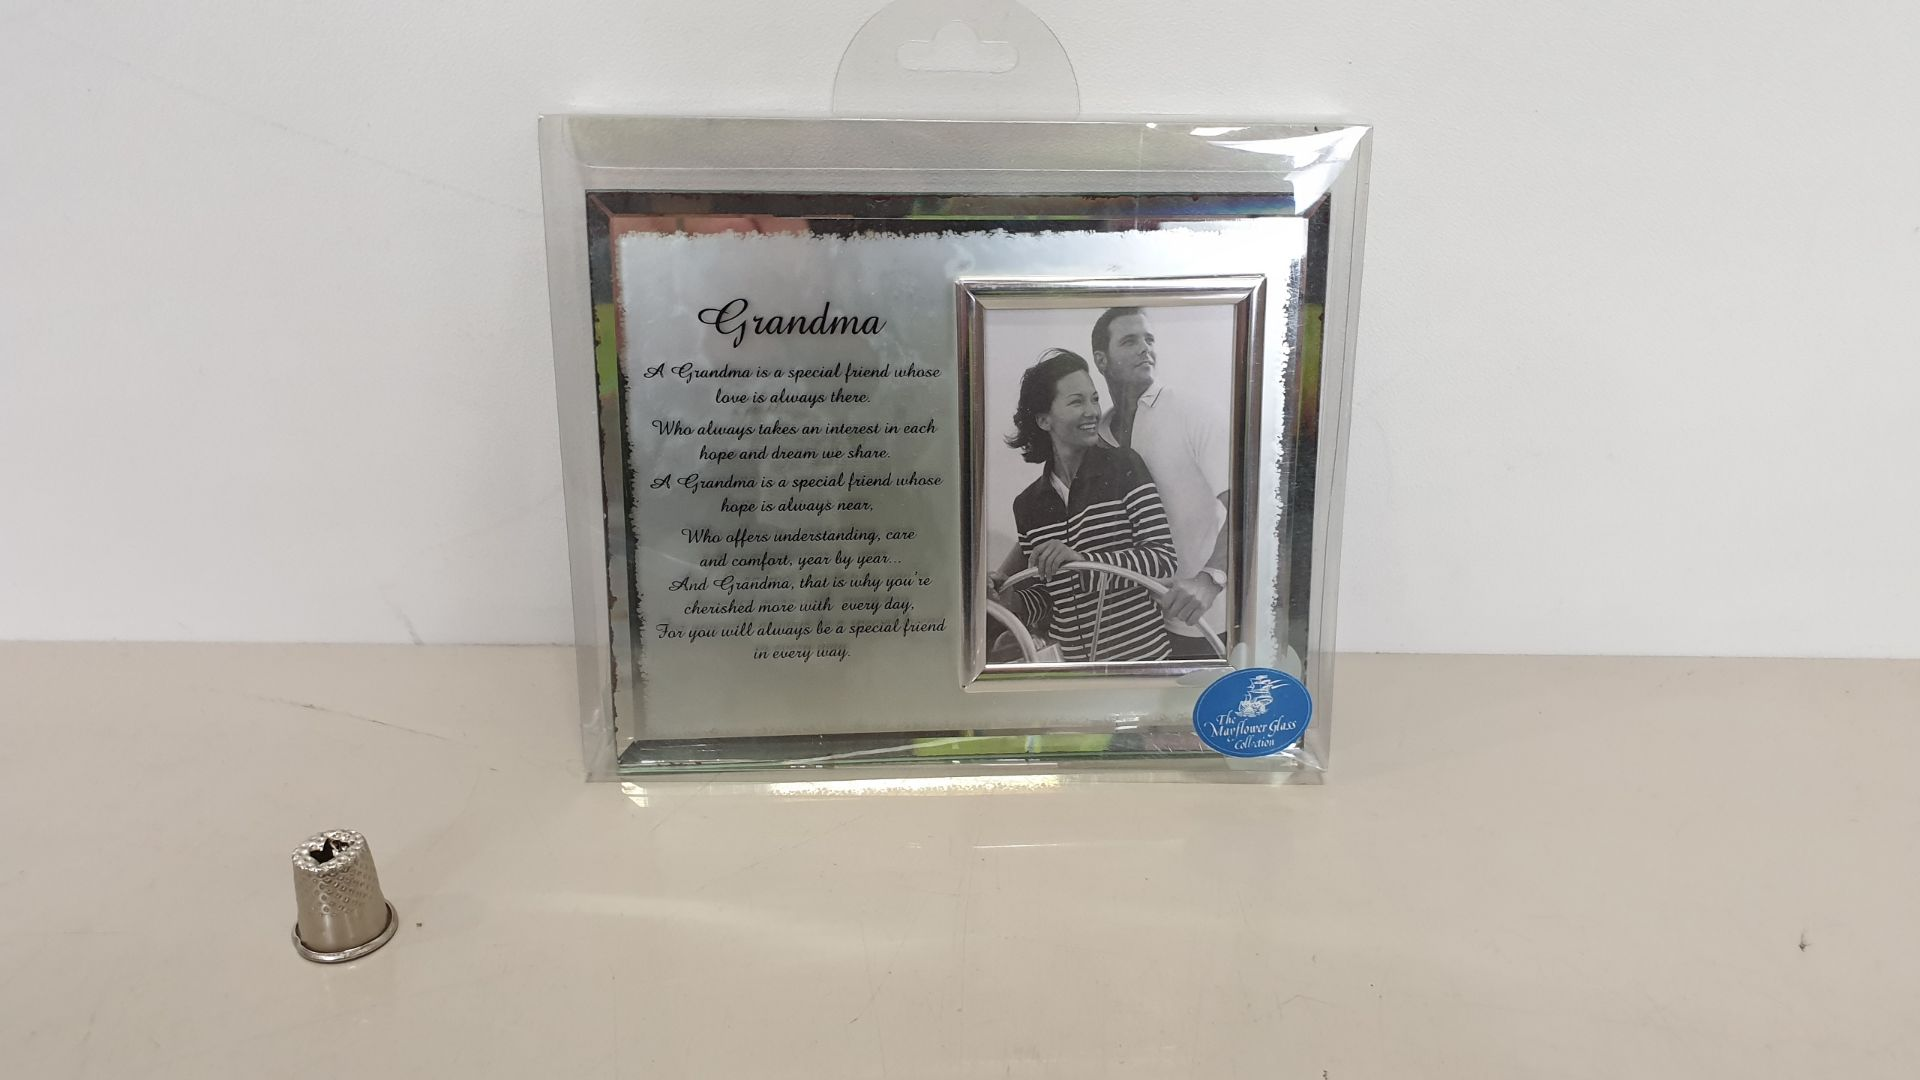 Lot 615 - 112 X BRAND NEW 'THE MAYFLOWER GLASS COLLECTION' GRANDMA MESSAGE FRAME - IN 2 BOXES AND 16 LOOSE